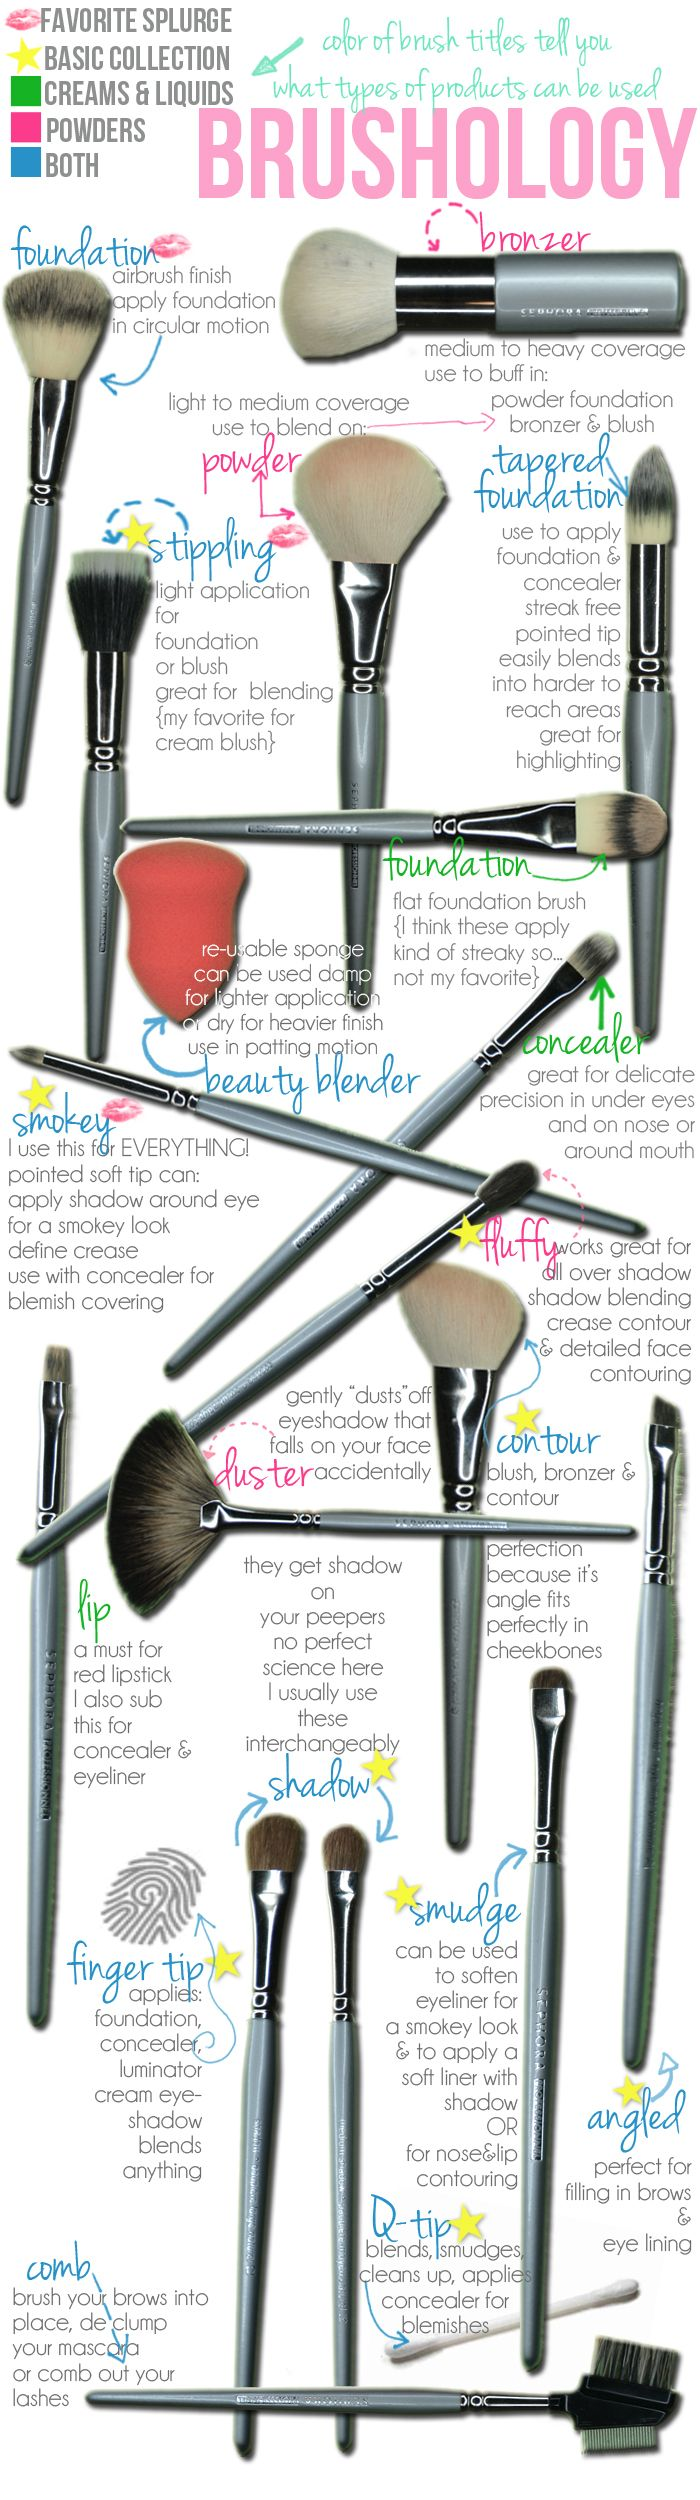 Brushology: everything you ever need to know about makeup brushes